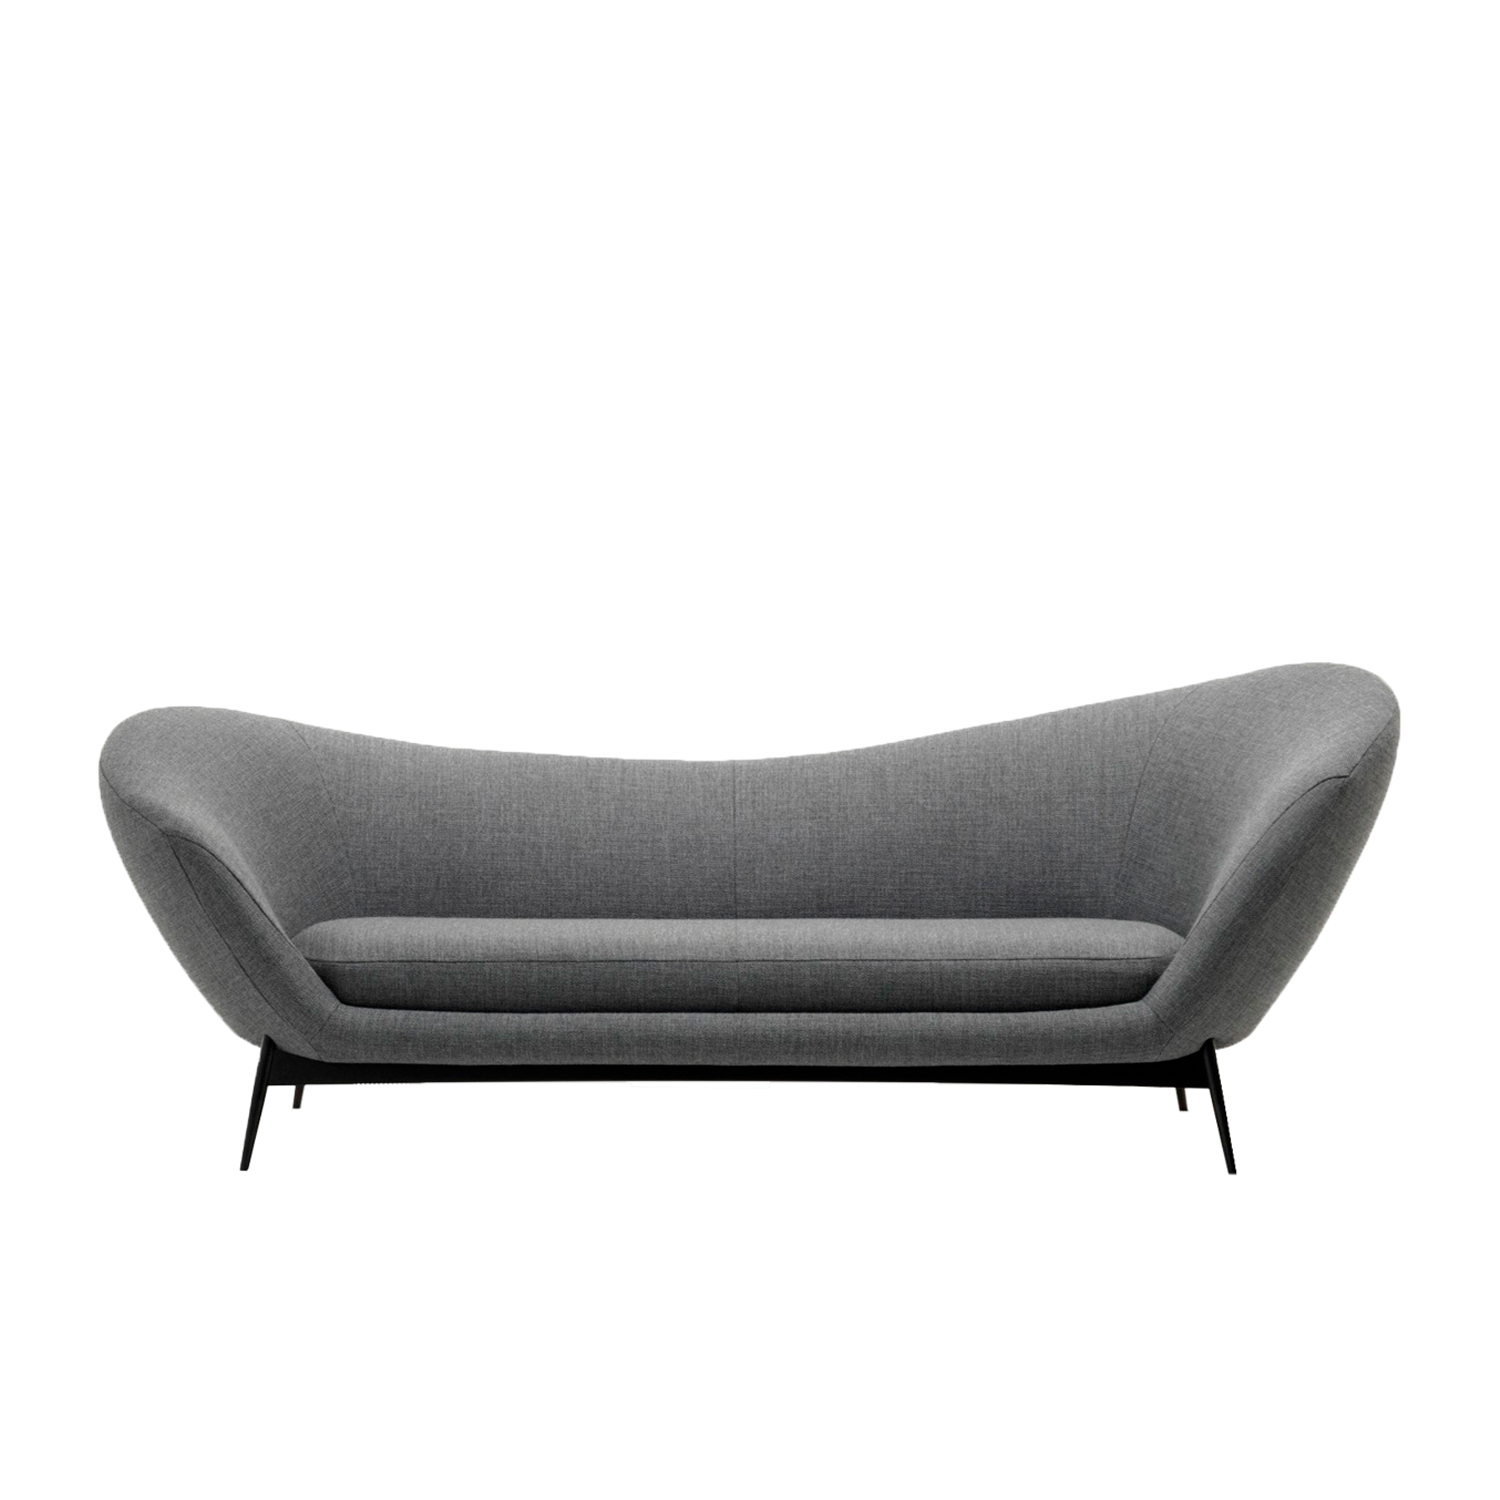 """Oltremare Sofa - Within its 225cm, Oltremare sofa offers a sweet stylistic landscape and, despite itscontained dimensions, it allows for various seating solutions – some unexpected – allextremely comfortable, a characteristic that makes it perfect ergonomically. Its seat issoft and the backrest, rigid at first glance, is in fact very welcoming.  The seating collection """"Oltremare"""" designed by Antonio Marras and produced incollaboration with Saba, stems from a far-away past and place, full of history,recollection, memories overflowing with suggestions and visions. By observing itssinuous silhouette, who boosts Sardinian origins, can even catch sight of a familiarpromontory and a small island, a fragment of the coast that in ancient times separateditself from the main land. A sofa can accompany us along the fascinating journey of our life, """"it becomes one of us,a friend staying over, staying so well that he doesn't want to leave"""". And this is how Antonio Marras presented an object so dear to him that he defines asacred-idol, that narrates of his land, of his sea, but mostly, of his story. We named it Oltremare, because all things have a soul and every soul has a name. Oltremare is a seating system that, even though winks at the past, it communicates astrong contemporary soul and is suitable by nature to various interpretations. Itseduces from any angle with its fascinating character, constantly offering a new senseof splendor.  Materials Structure in MDF with plywood base padded with variable density polyurethane foam covered with fine velvet coupled with resin 150gr/sqm. Feet in painted metal, 20cm heigh. The seat cushions are padded with variable-density polyurethane foam, covered with fine velvet coupled with resin 150gr/sqm. 